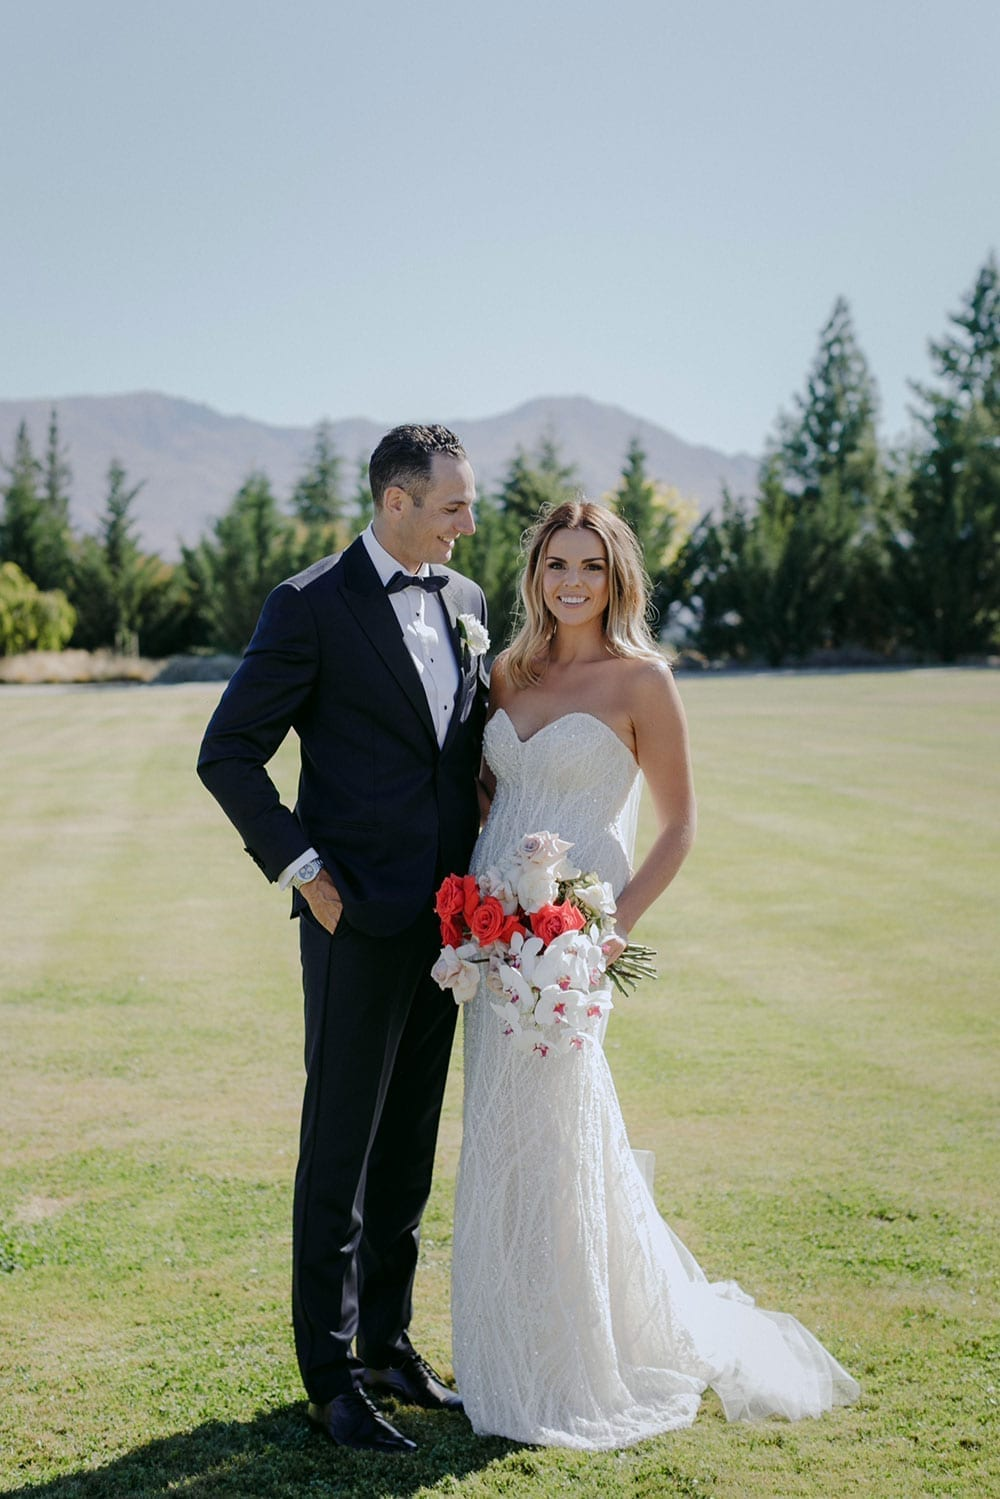 Vinka Design Features Real Weddings - bride in custom made gown, a combination of our Indi wedding dress with added beading appliqued and sewn by hand, over the top of a nude semi sheer base. Holding bouquet with groom